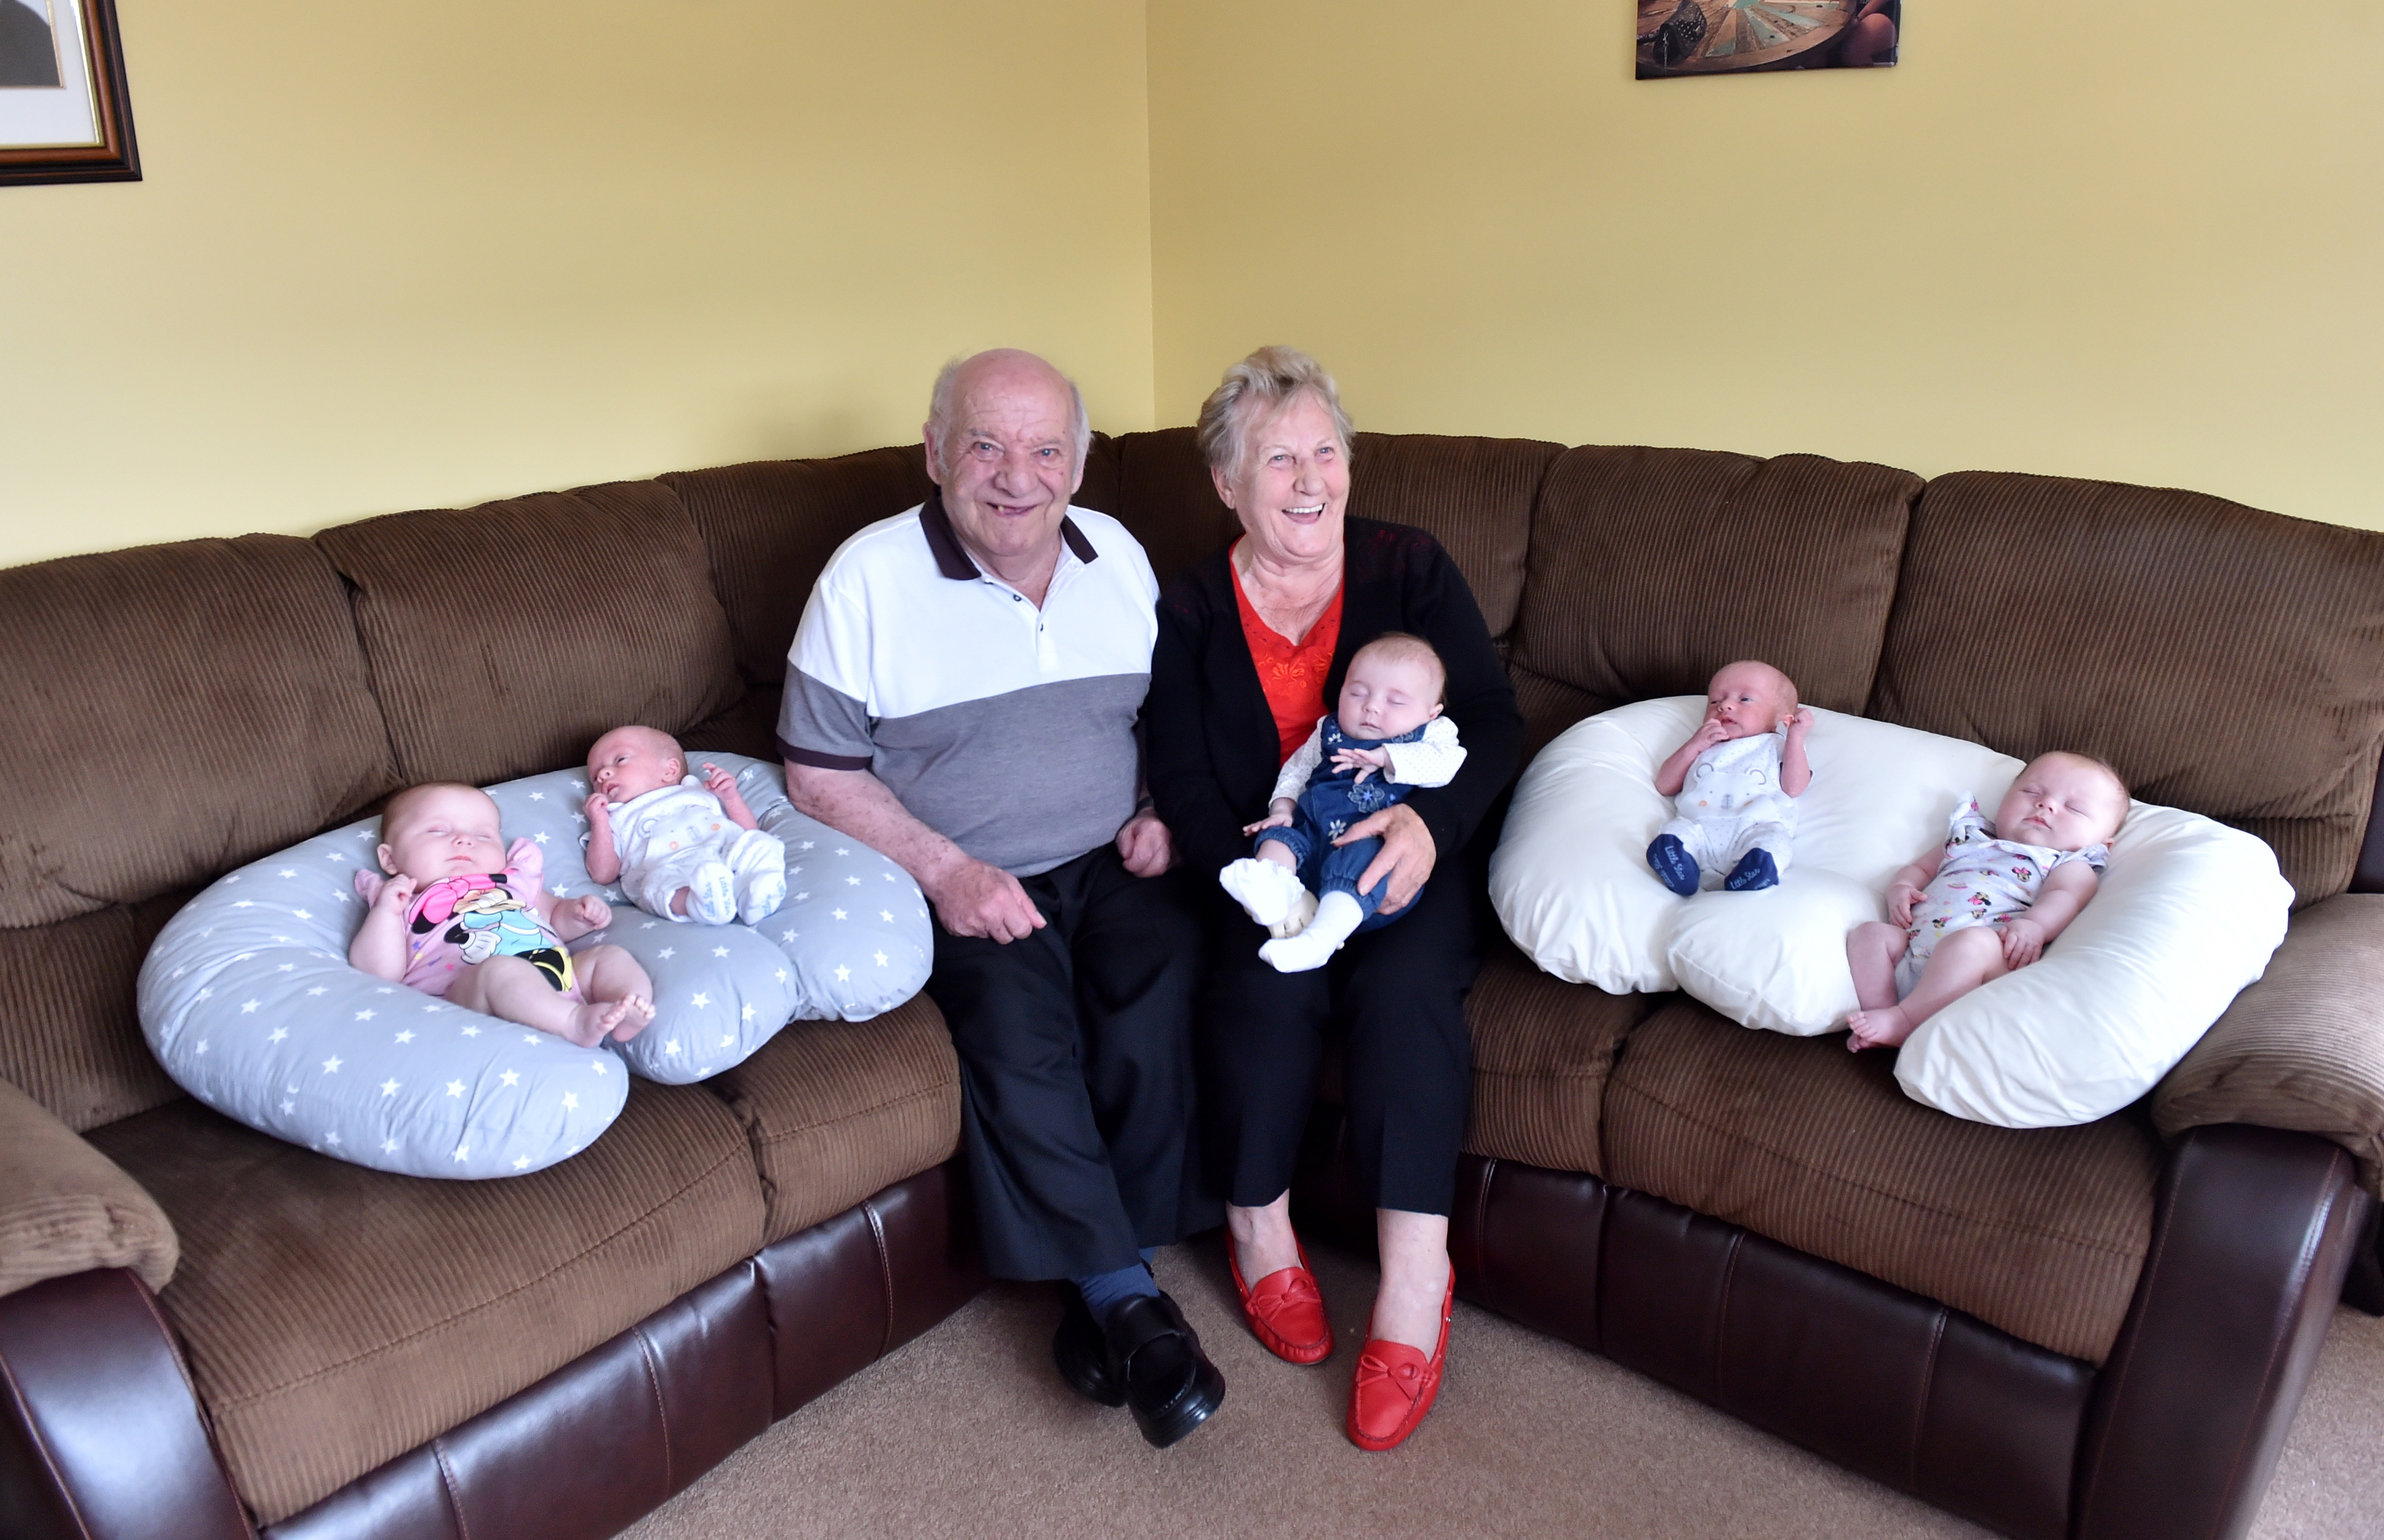 Great-grandparents Hugh and Bunty with their five new great-grandchildren.